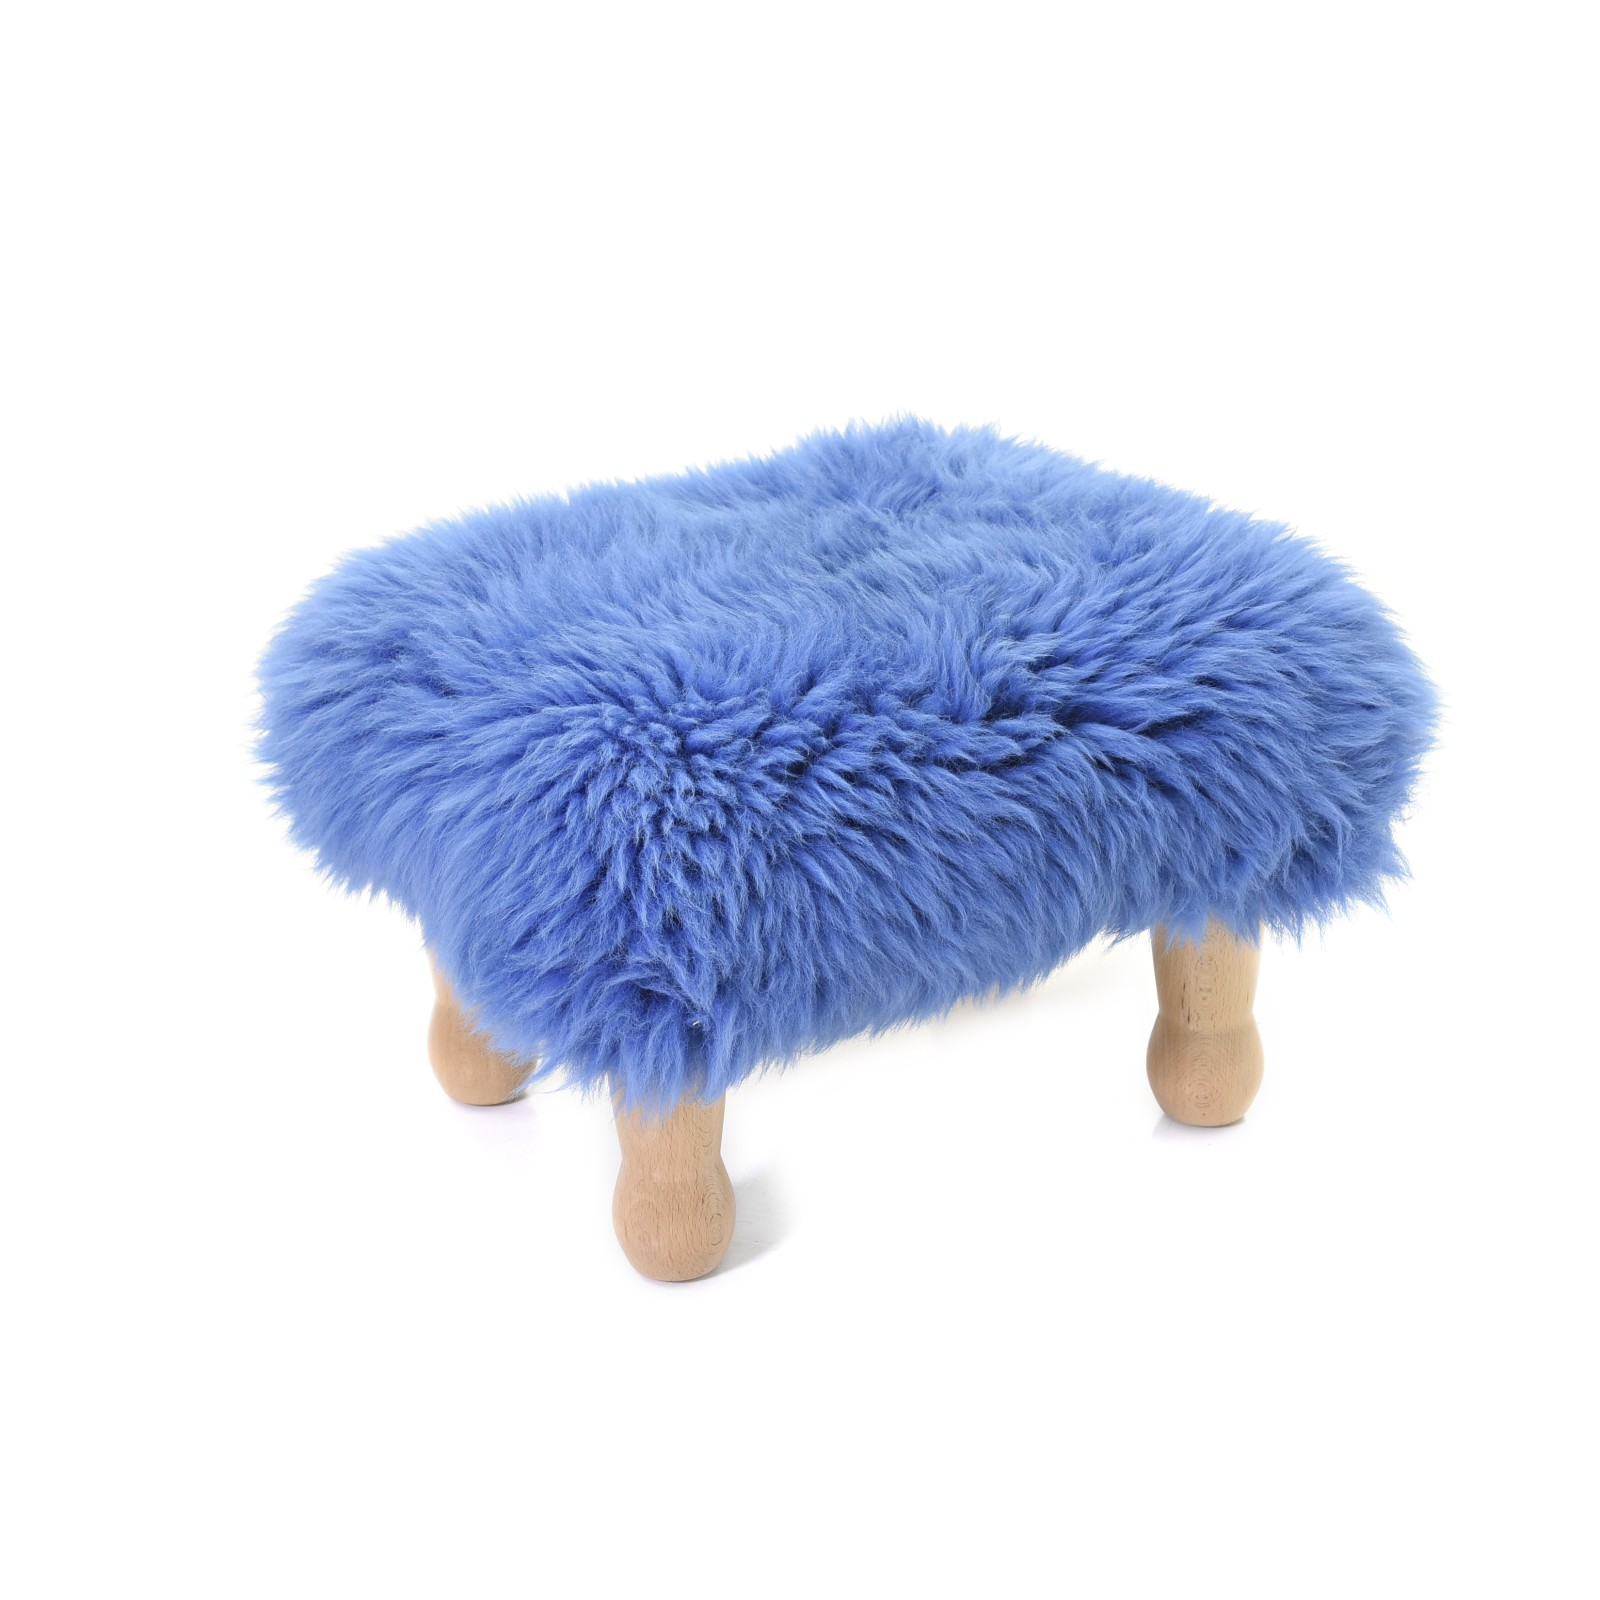 Angharad sheepskin Footstool Angharad Baa Stool in Cornflower Blue